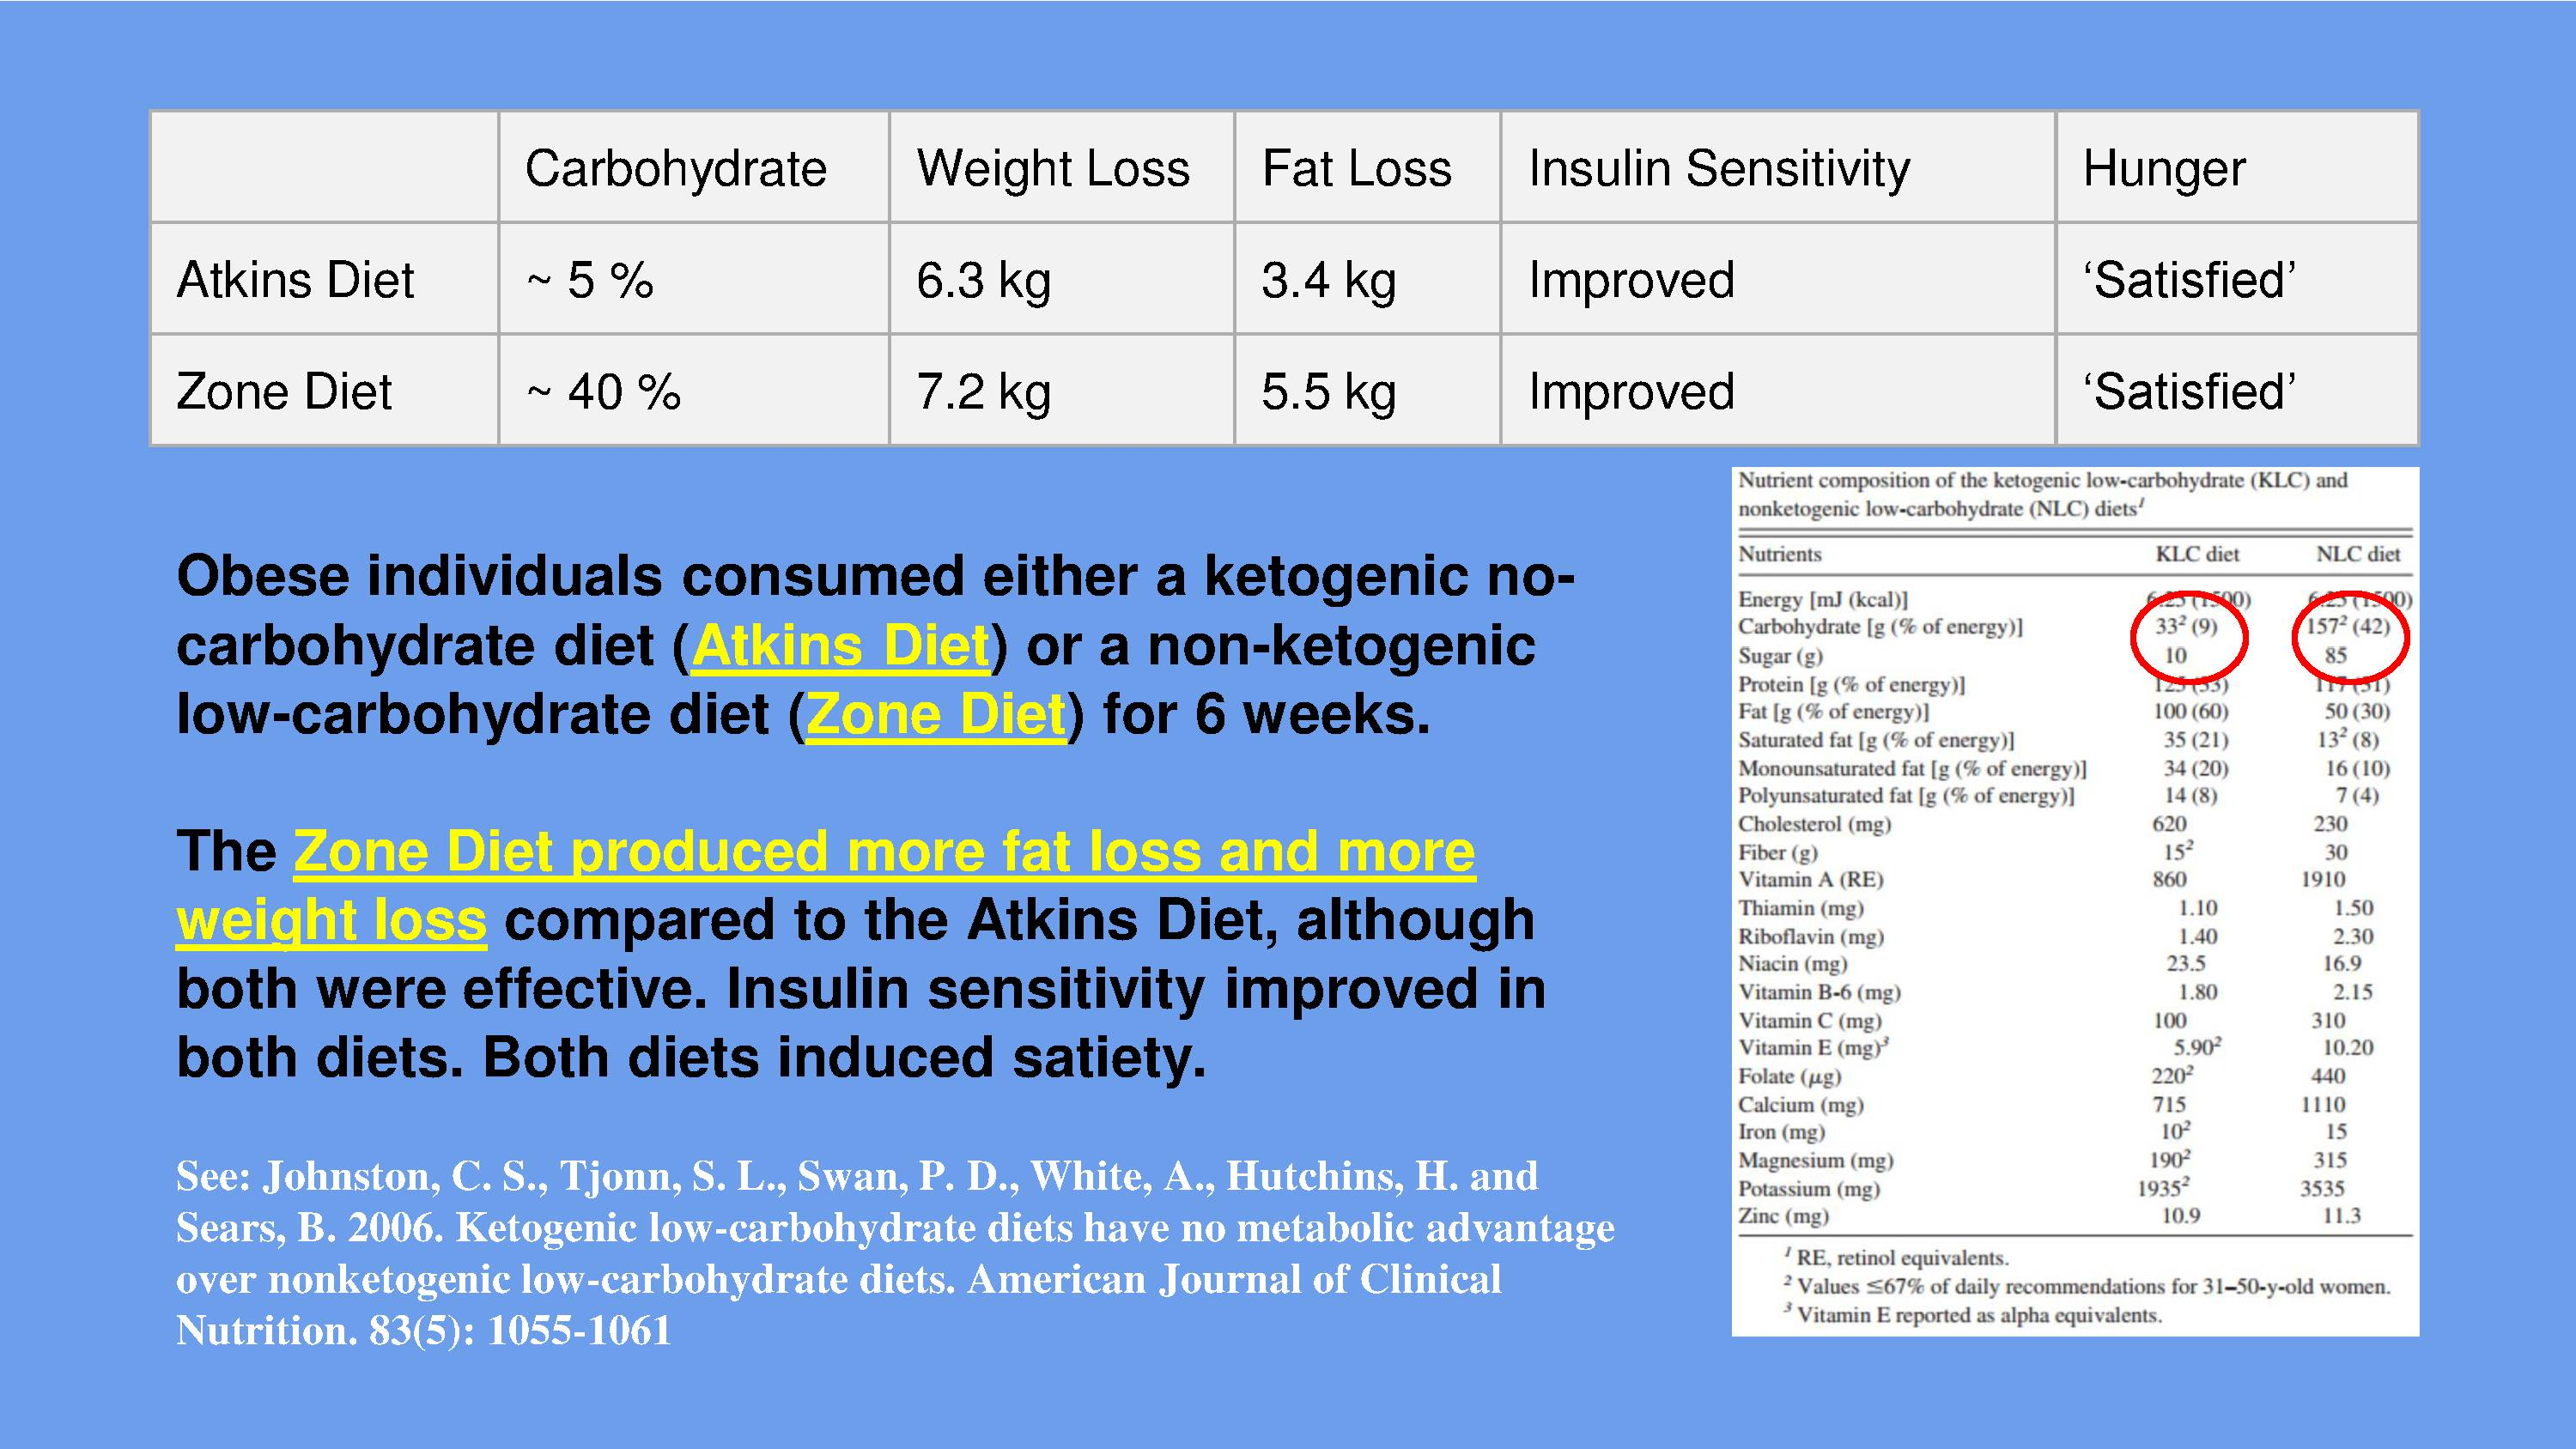 Acetyl L Carnitine Ketogenic Diet | All Articles about Ketogenic Diet